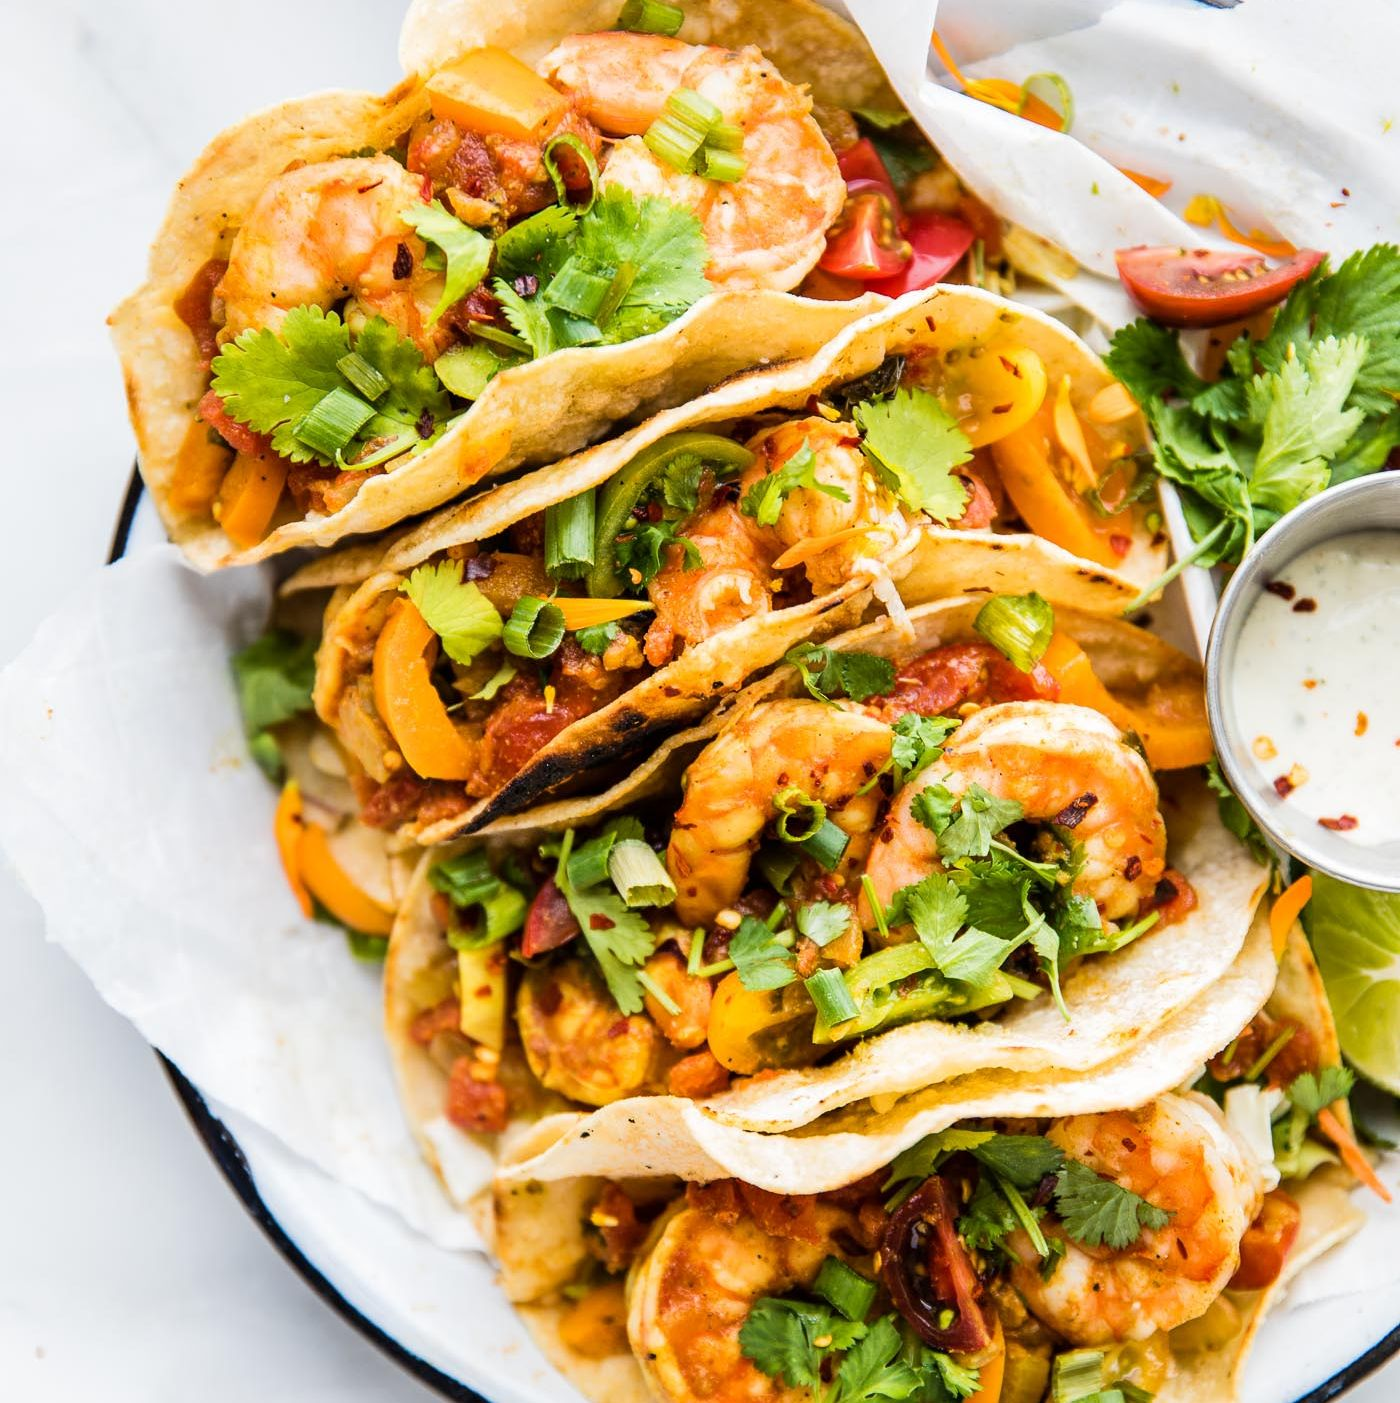 Easy Crock Pot Fire Roasted Tomato Shrimp Tacos Easy, breezy, beautifully light (see what I did there?)! This healthy take on tacos calls for tomatoes and bell peppers, making it a vitamin C fiesta in your mouth (and bod).